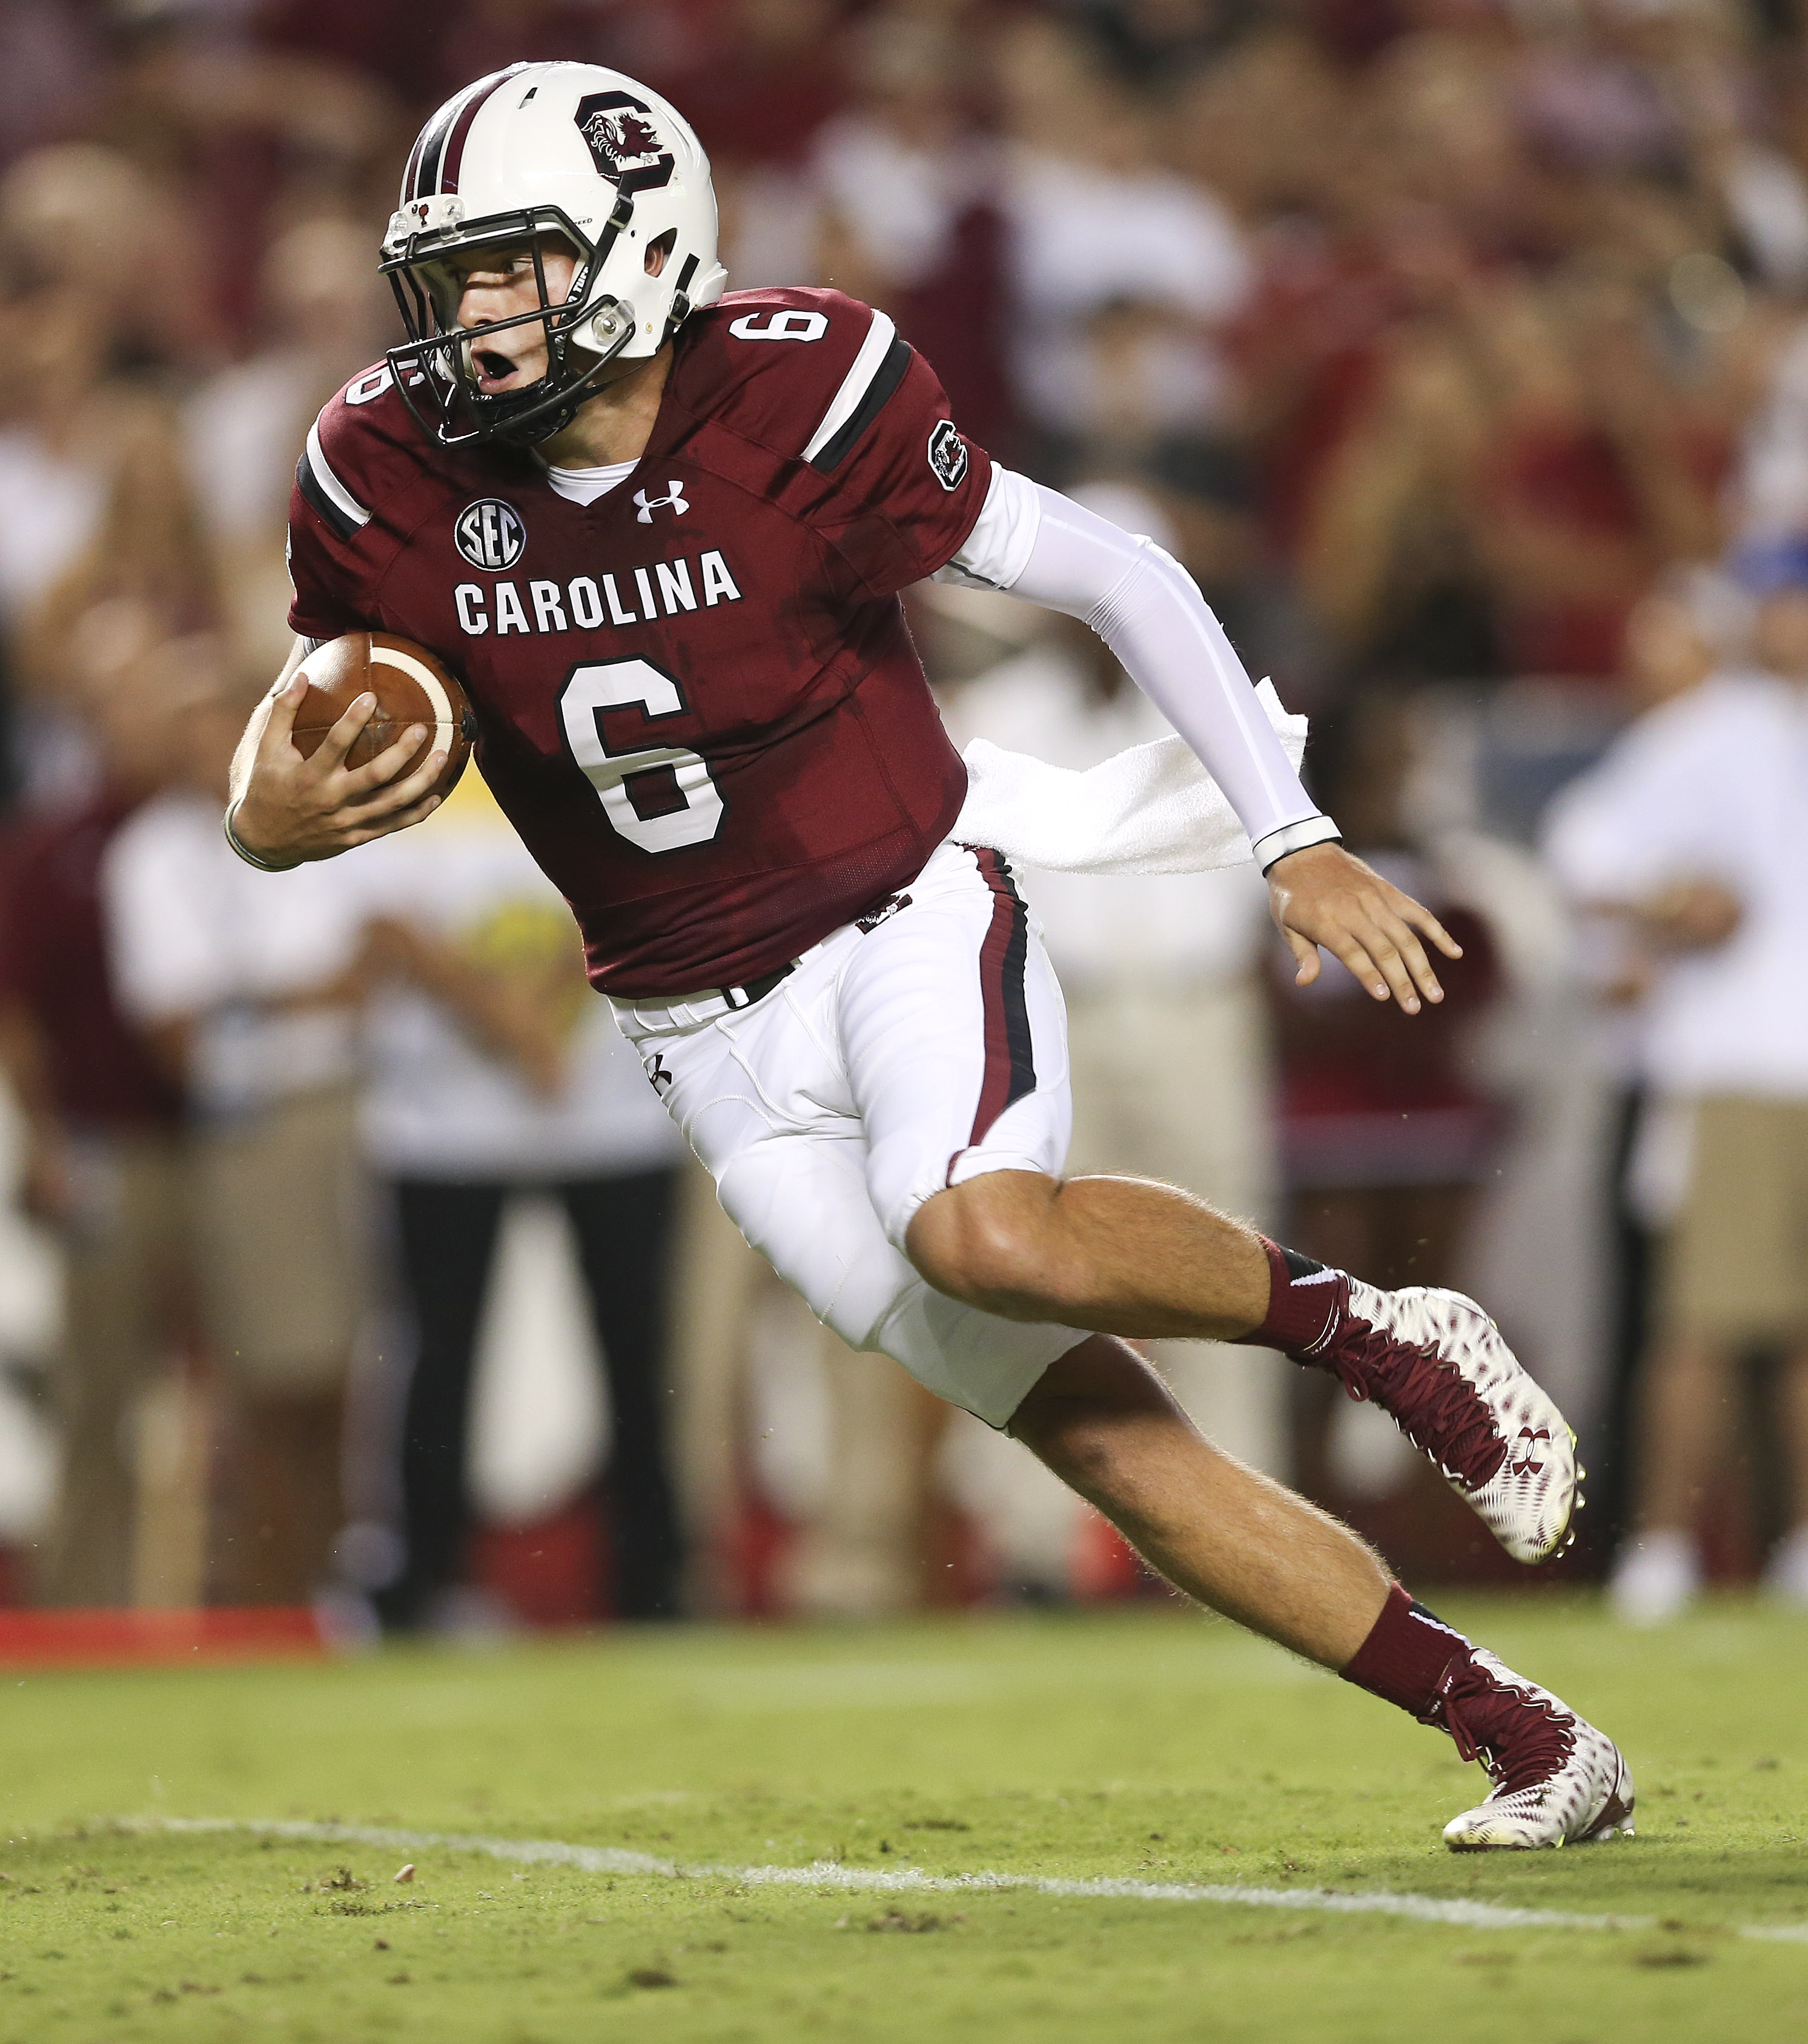 South Carolina quarterback Connor Mitch (6)  runs for a touchdown in the first half of an NCAA college football game against Kentucky, Saturday, Sept. 12, 2015, in Columbia, S.C. (AP Photo/John Bazemore)